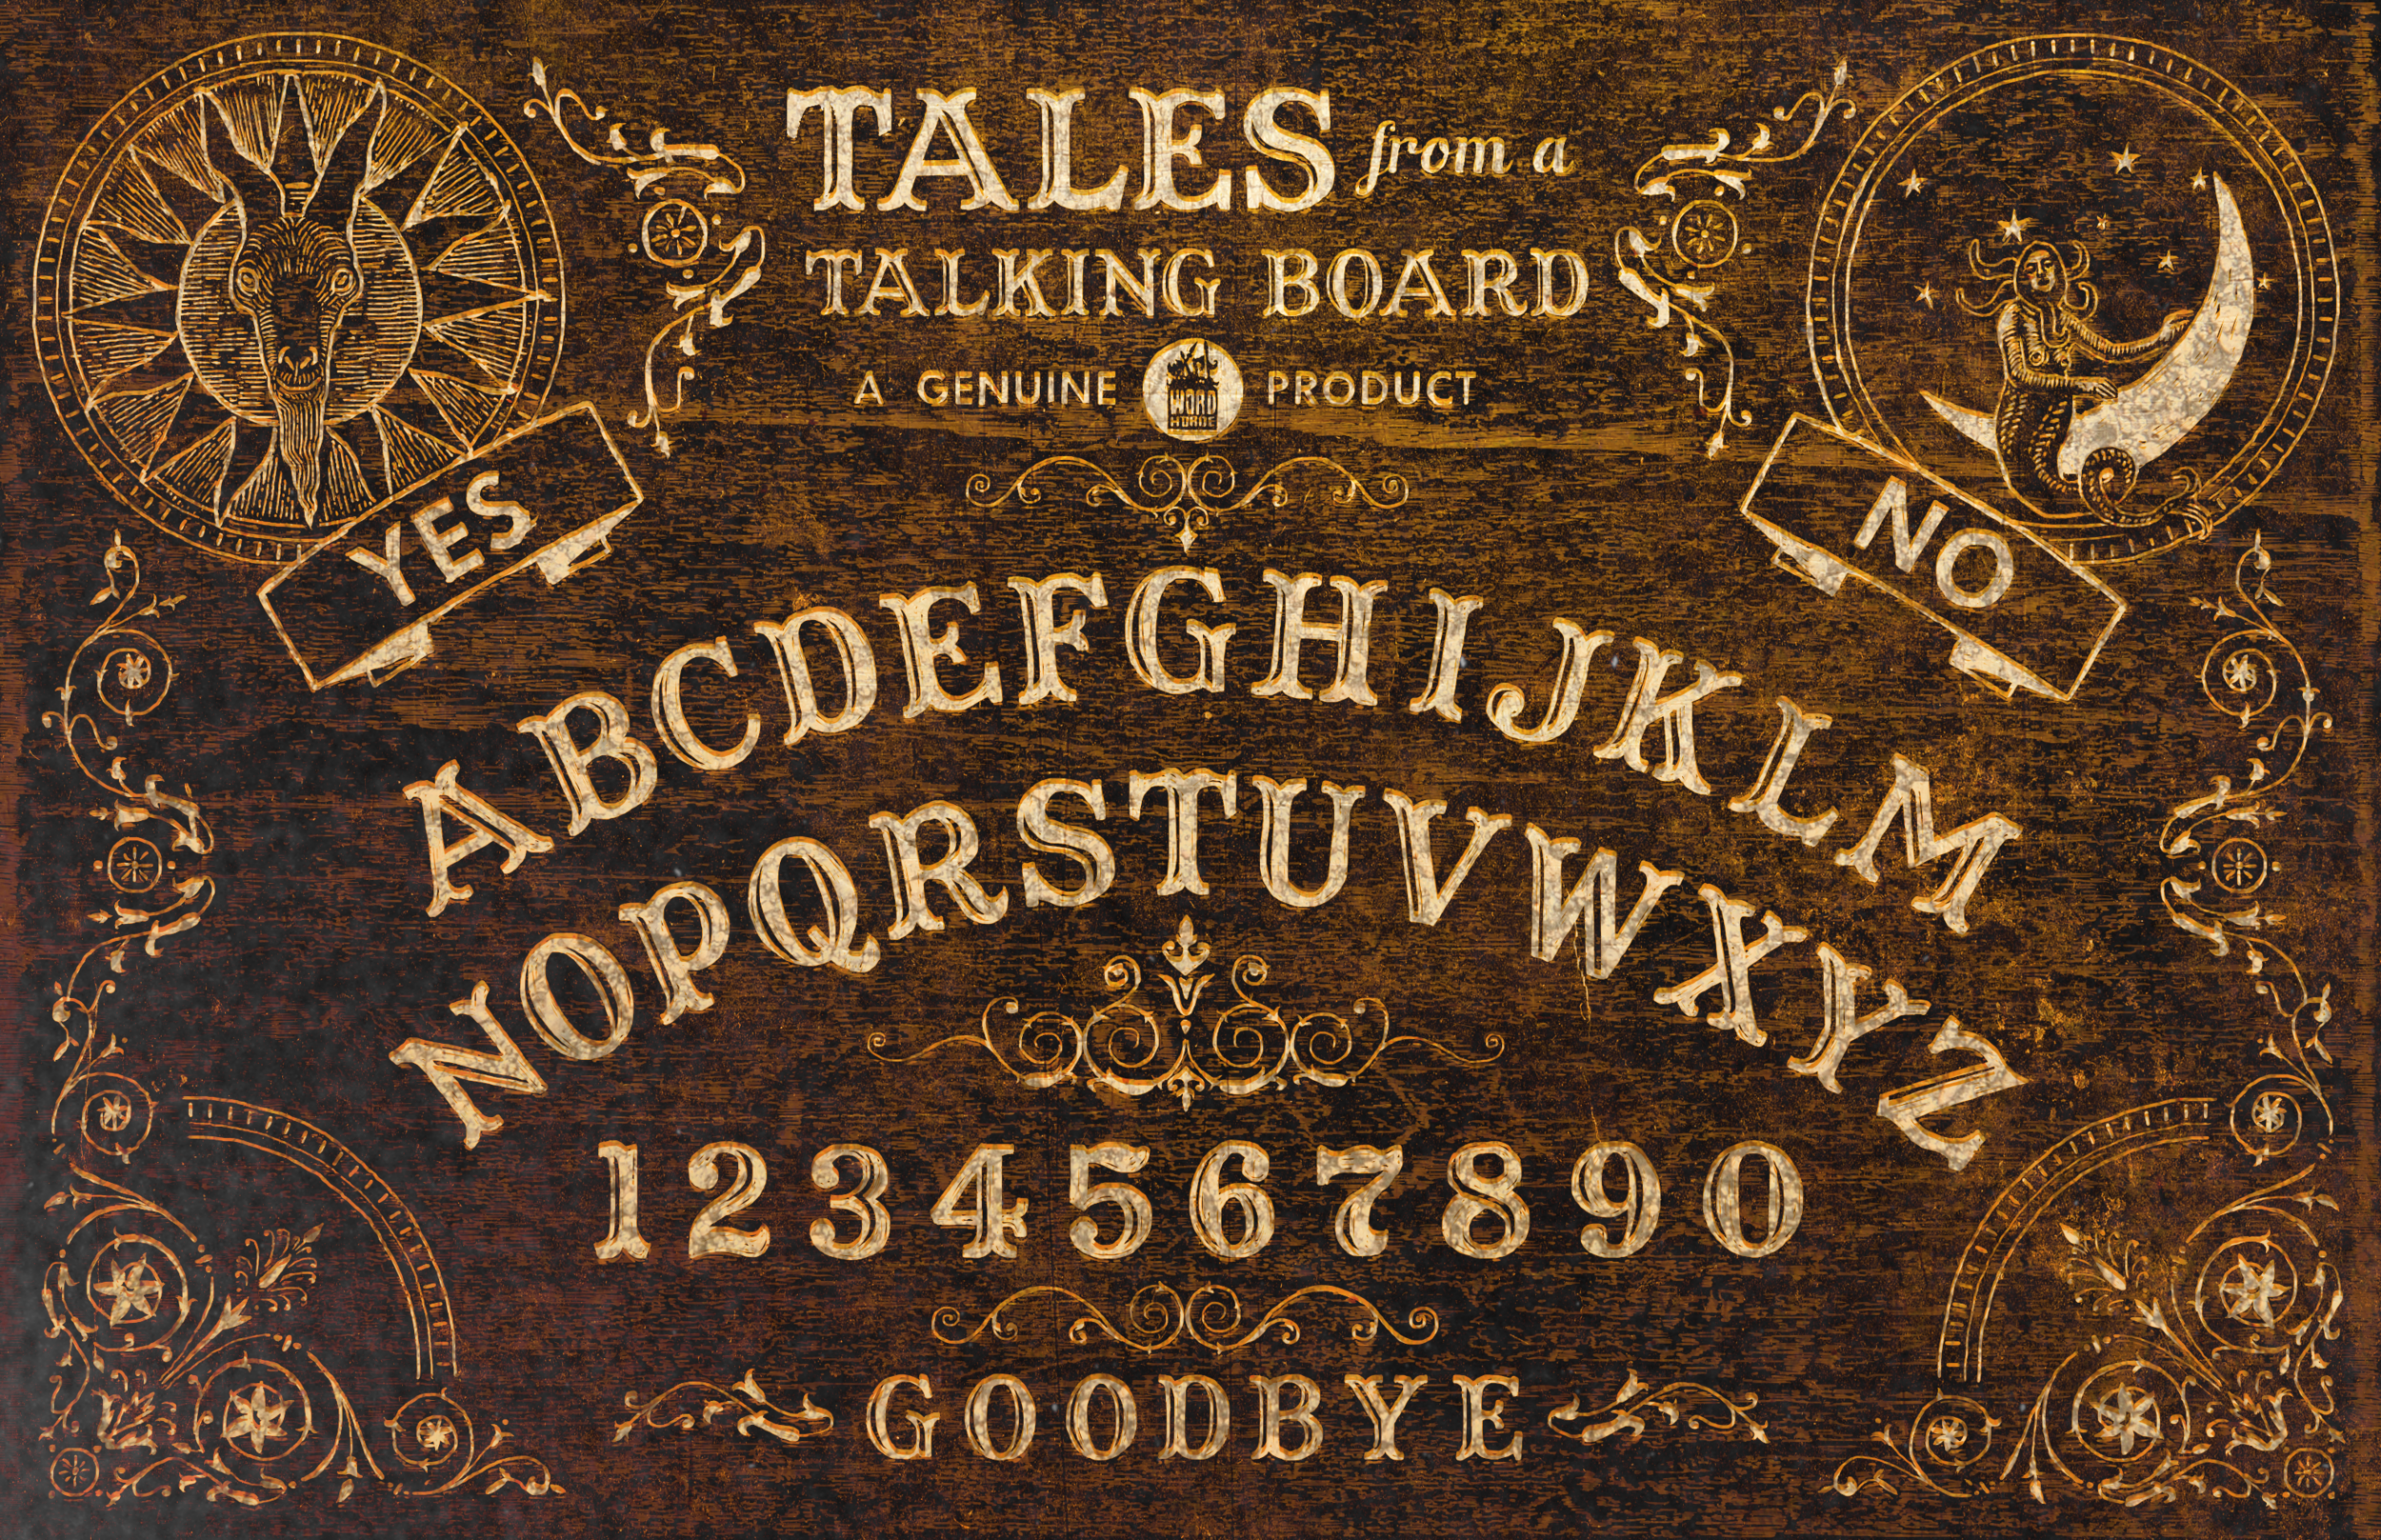 'Tales from a Talking Board' book cover (Word Horde, 2017)